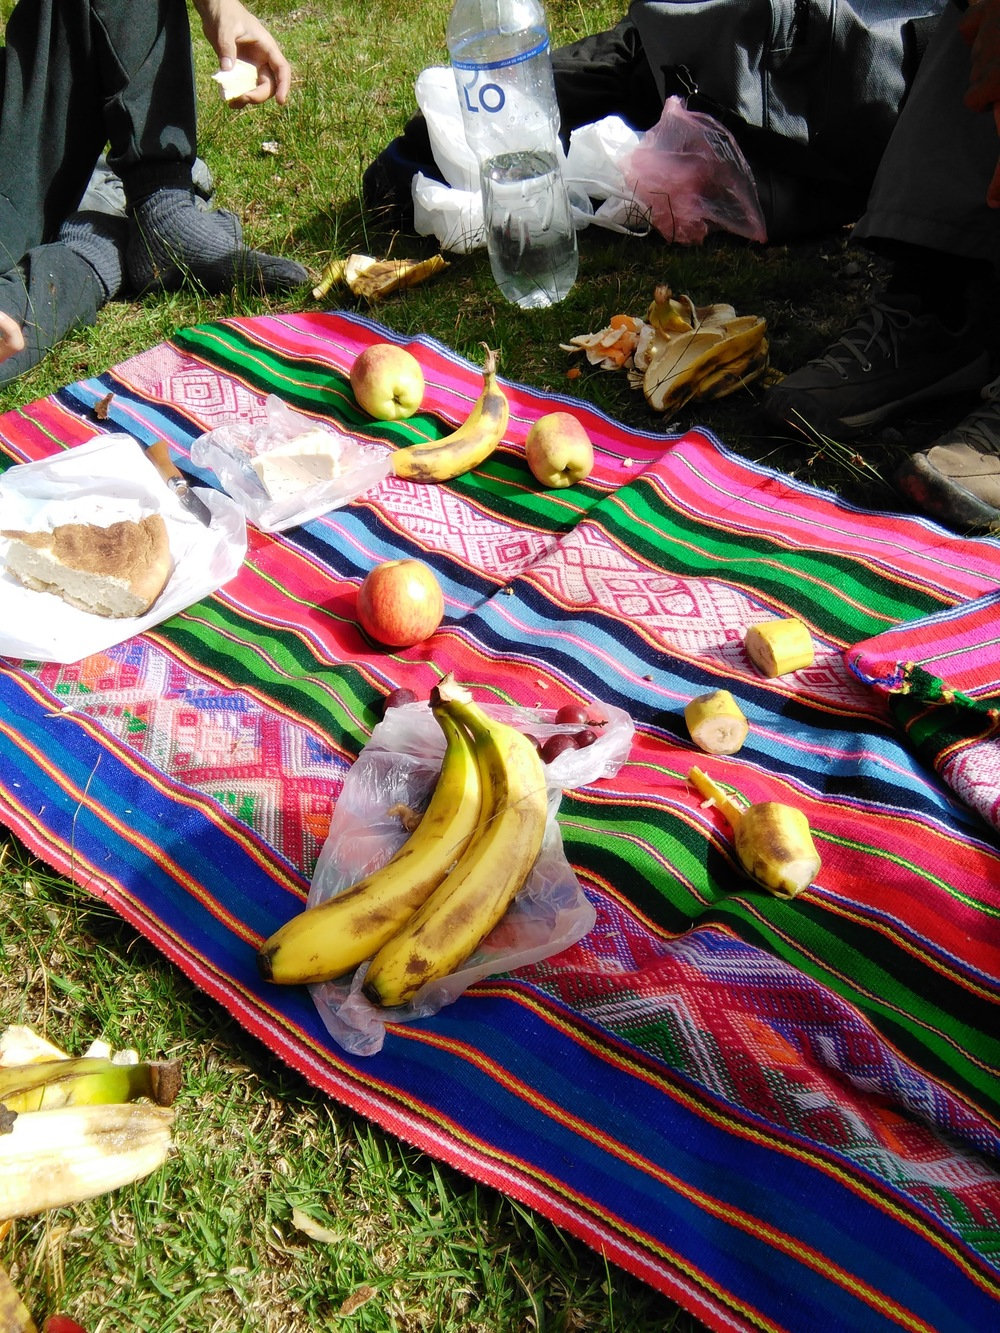 Our fruit picnic the next morning